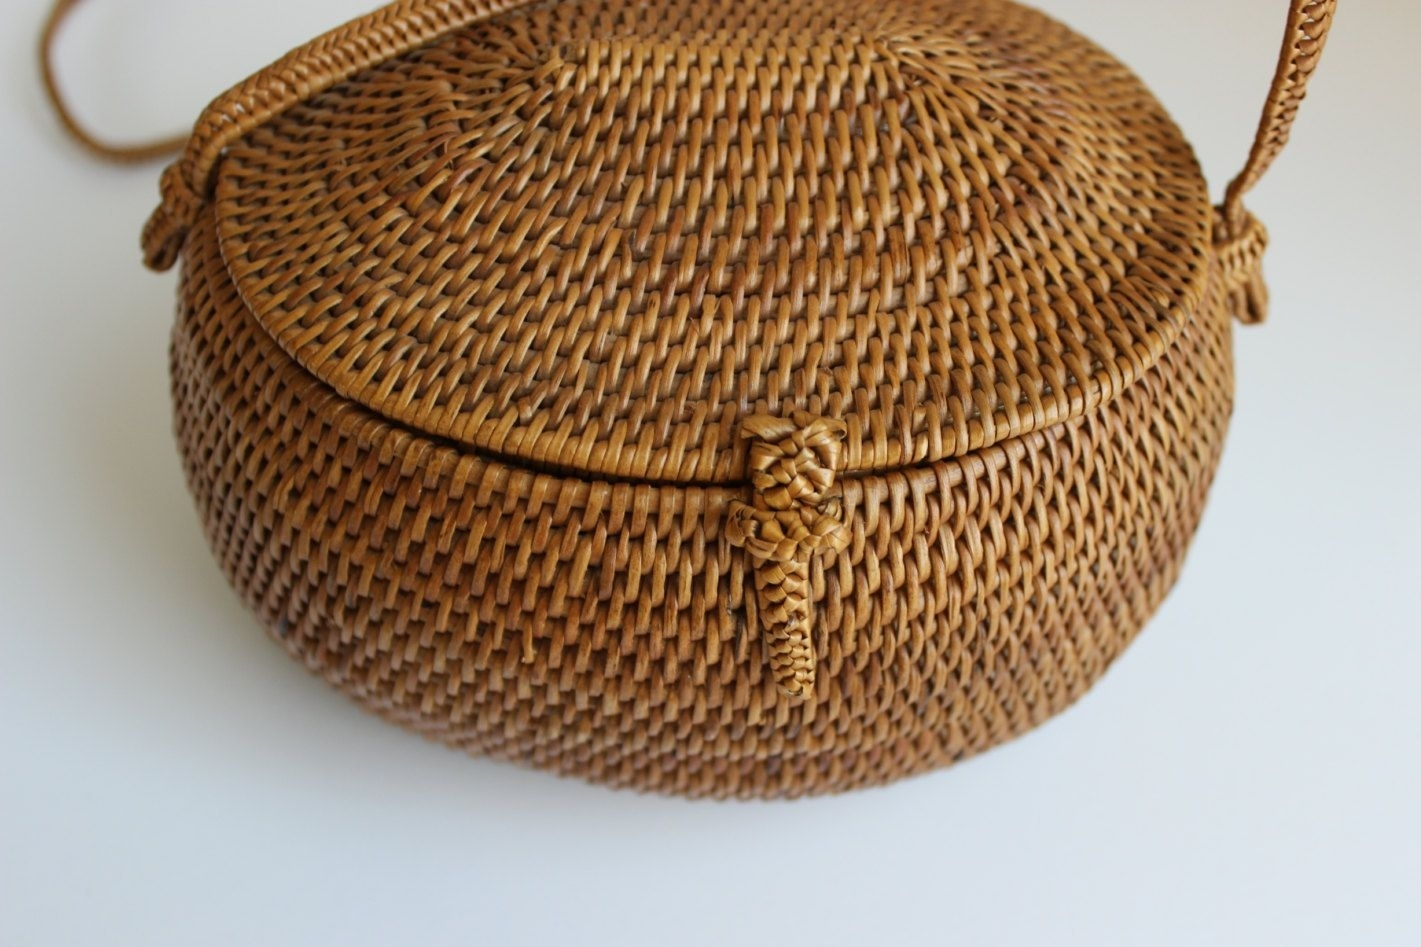 High Woven Basket Boho Woven Woven Basket Wall Basketdecor Woven Regarding Most Recent Woven Basket Wall Art (Gallery 17 of 20)